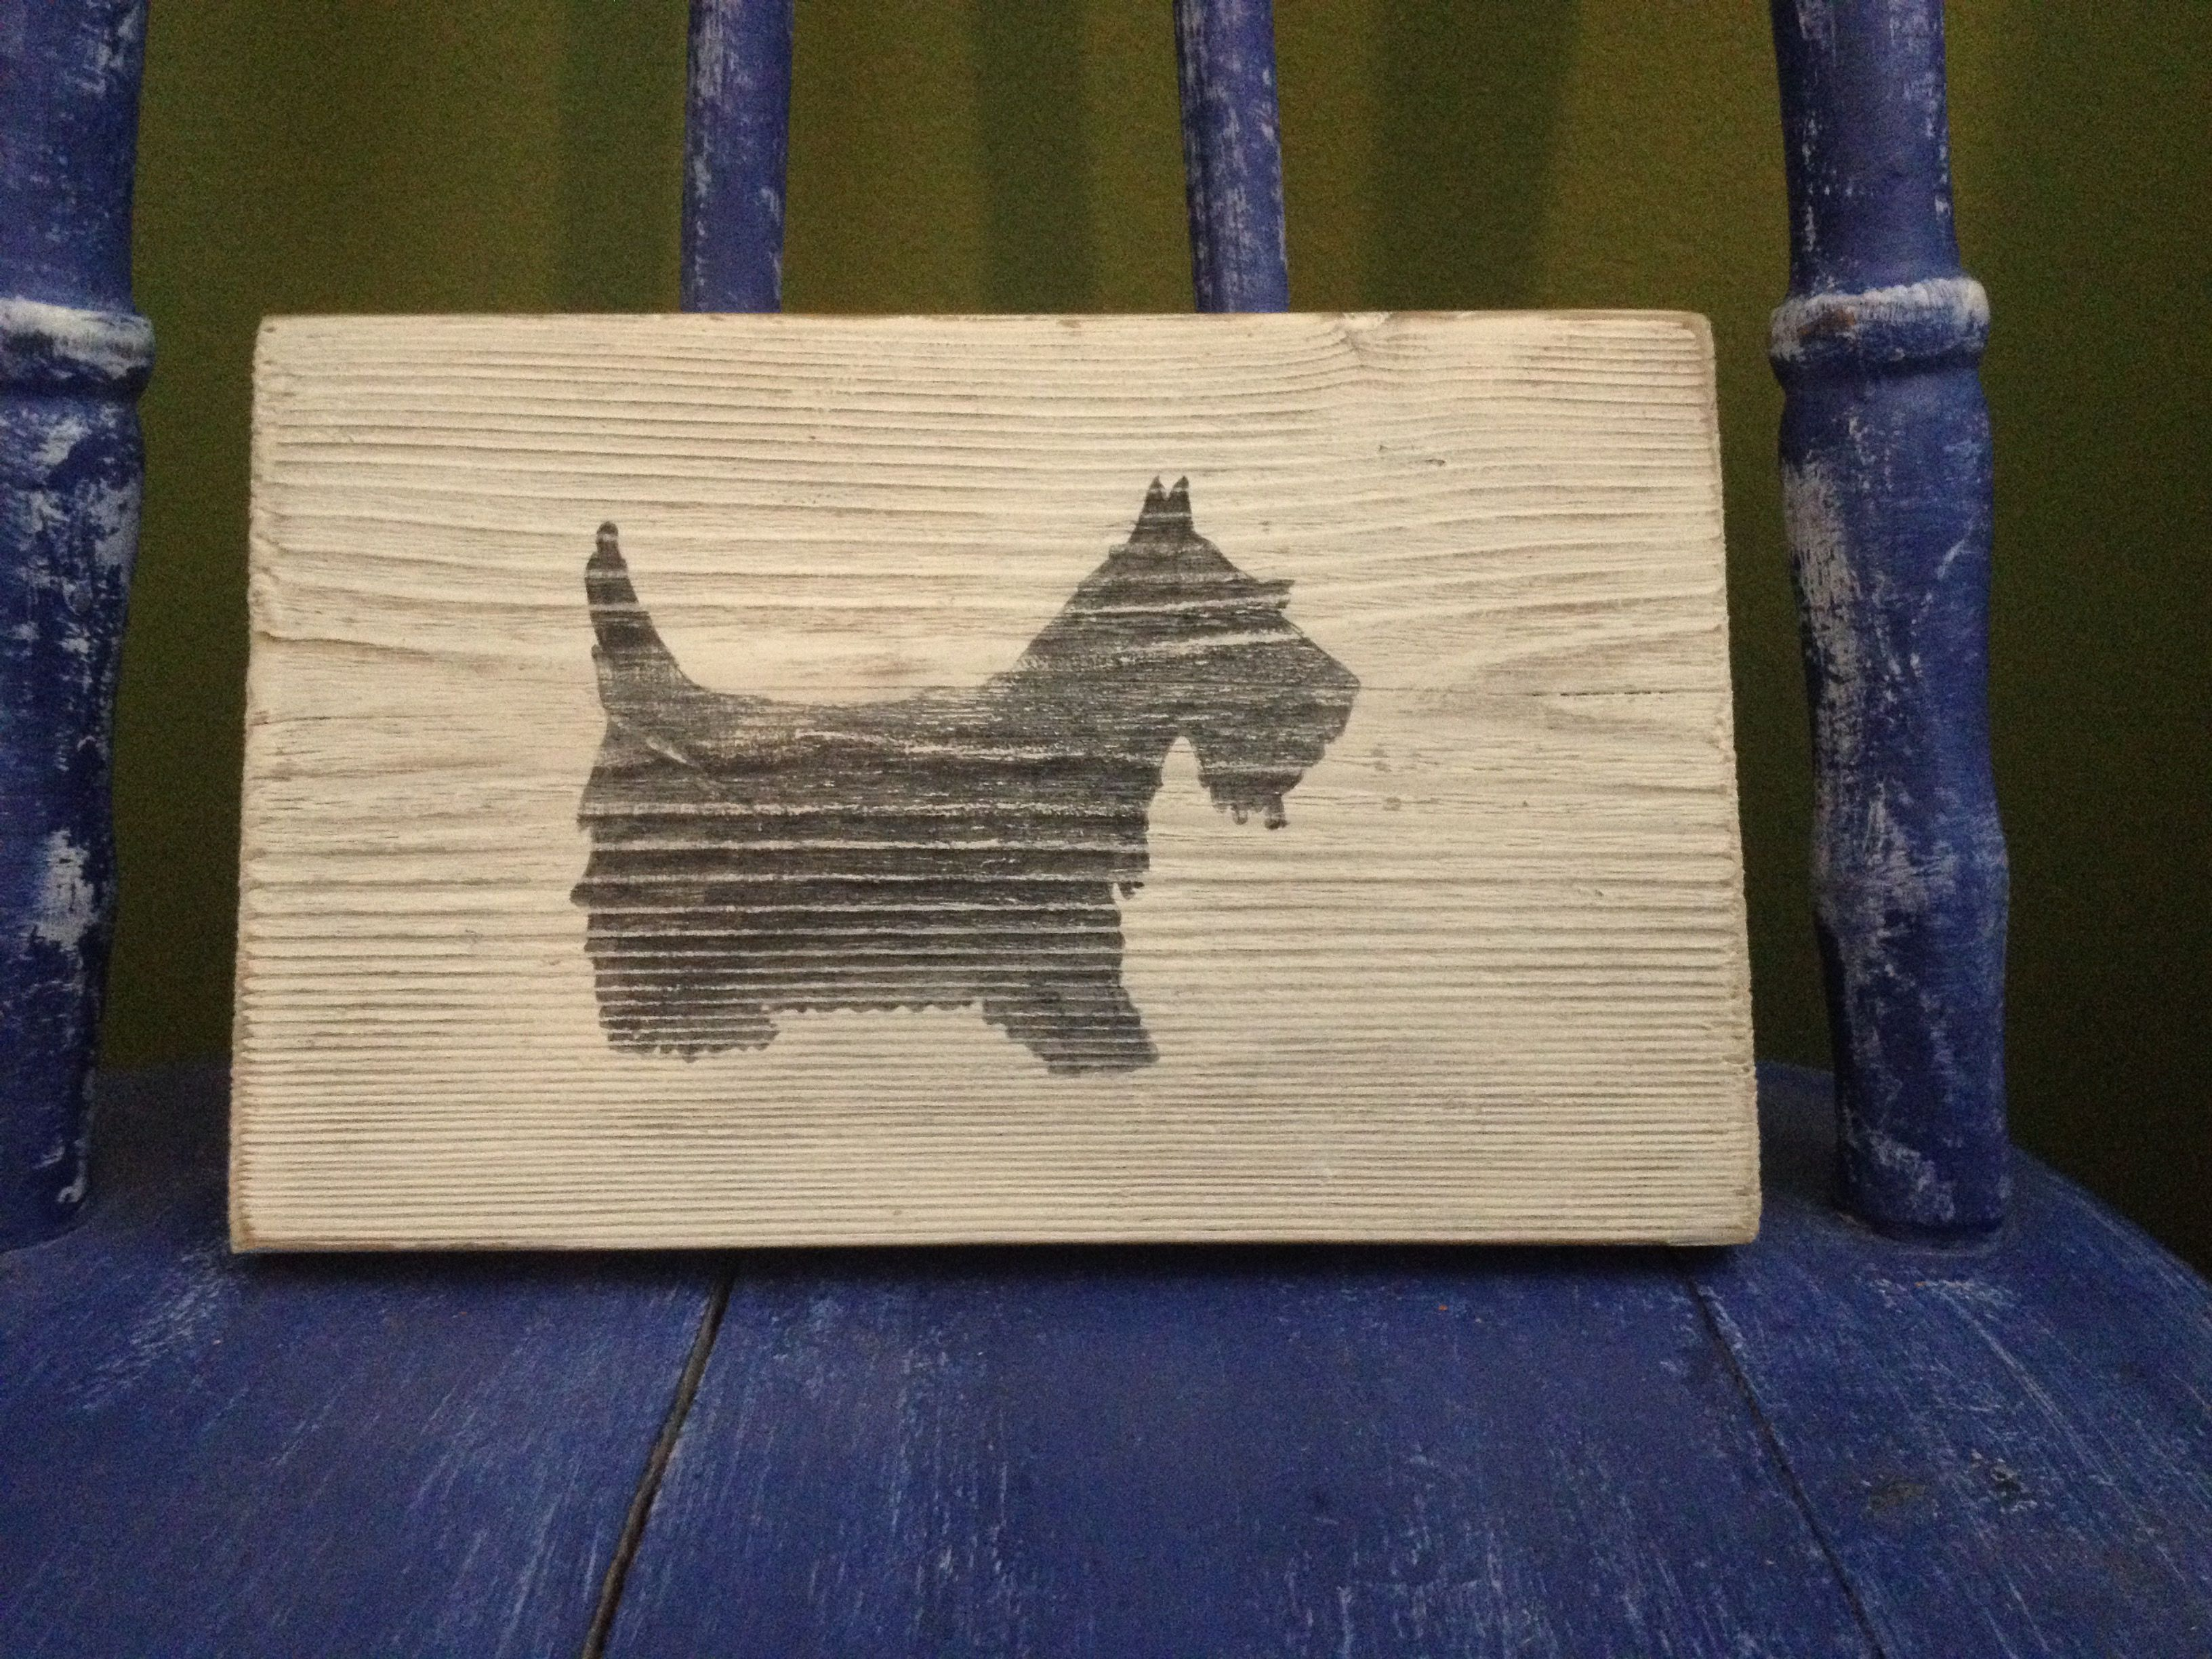 Scottie Dog Sign: After seeing the Wiener Dog sign a friend contacted me to ask if I could do a Scottie Dog sign, too because her Mom collected all things Scottie Dog. I said, of course!